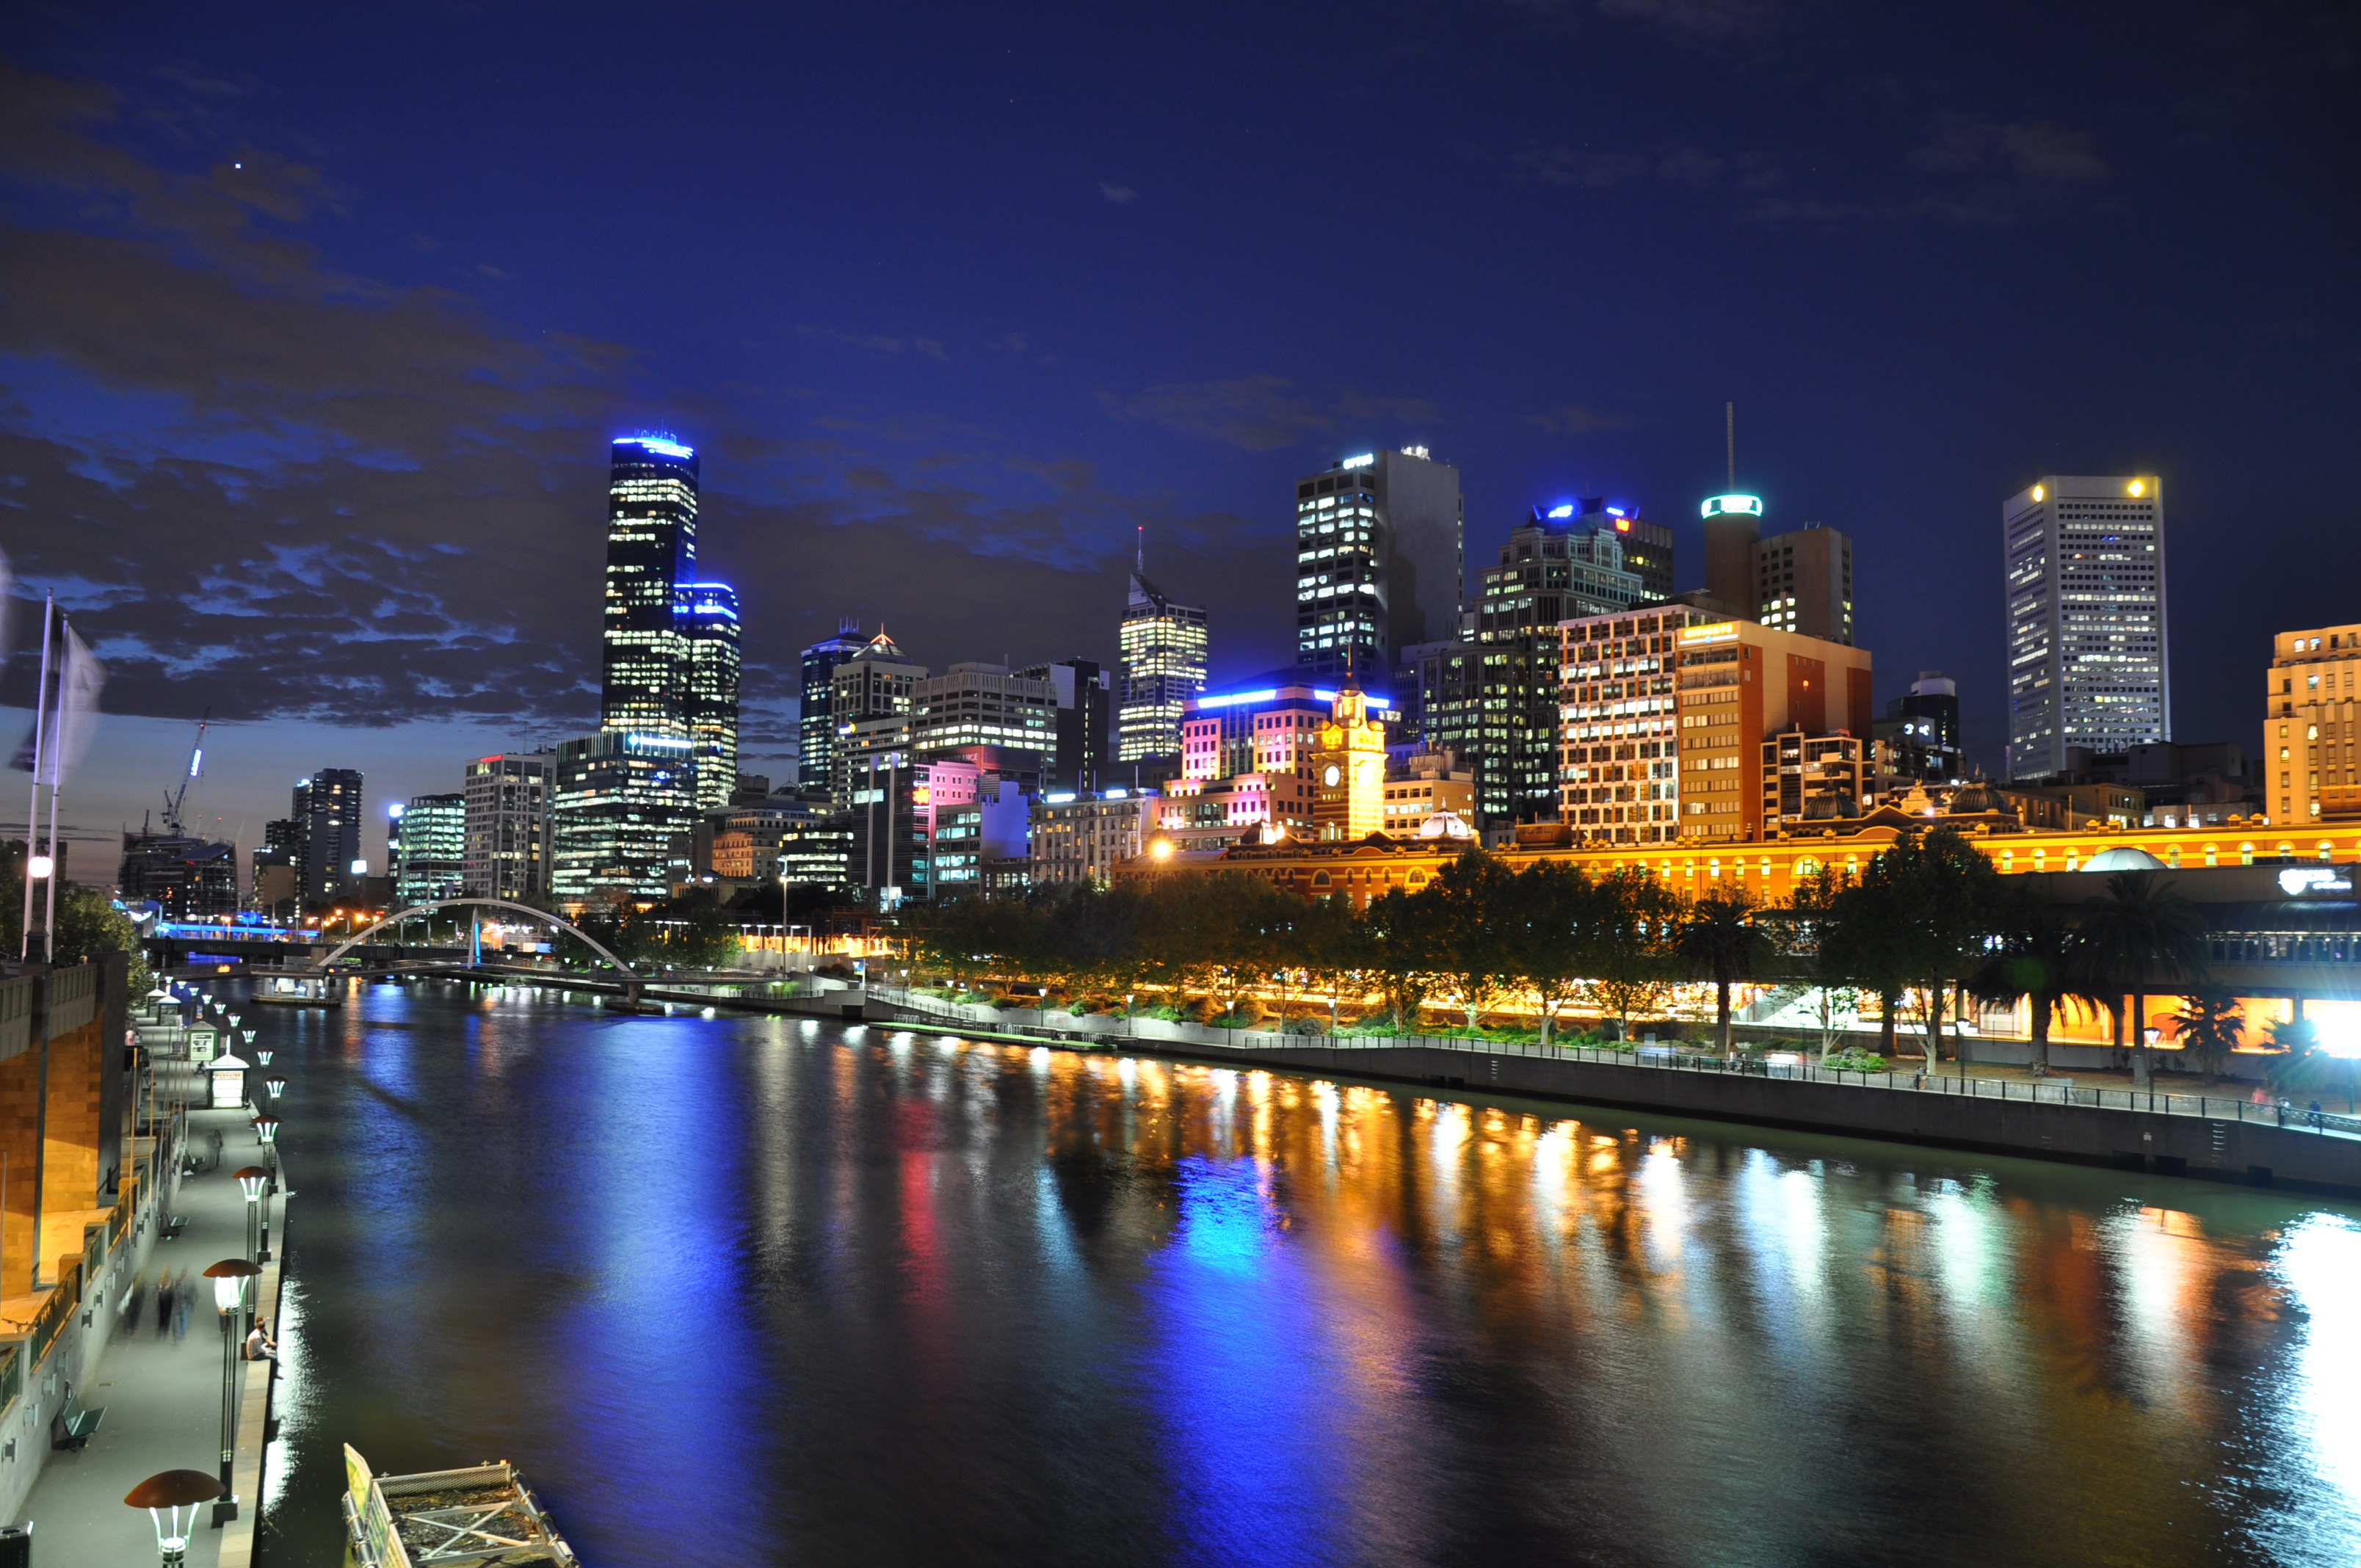 Animal Farm Wallpaper Melbourne Cbd And Yarra River From Princes Bridge Flickr